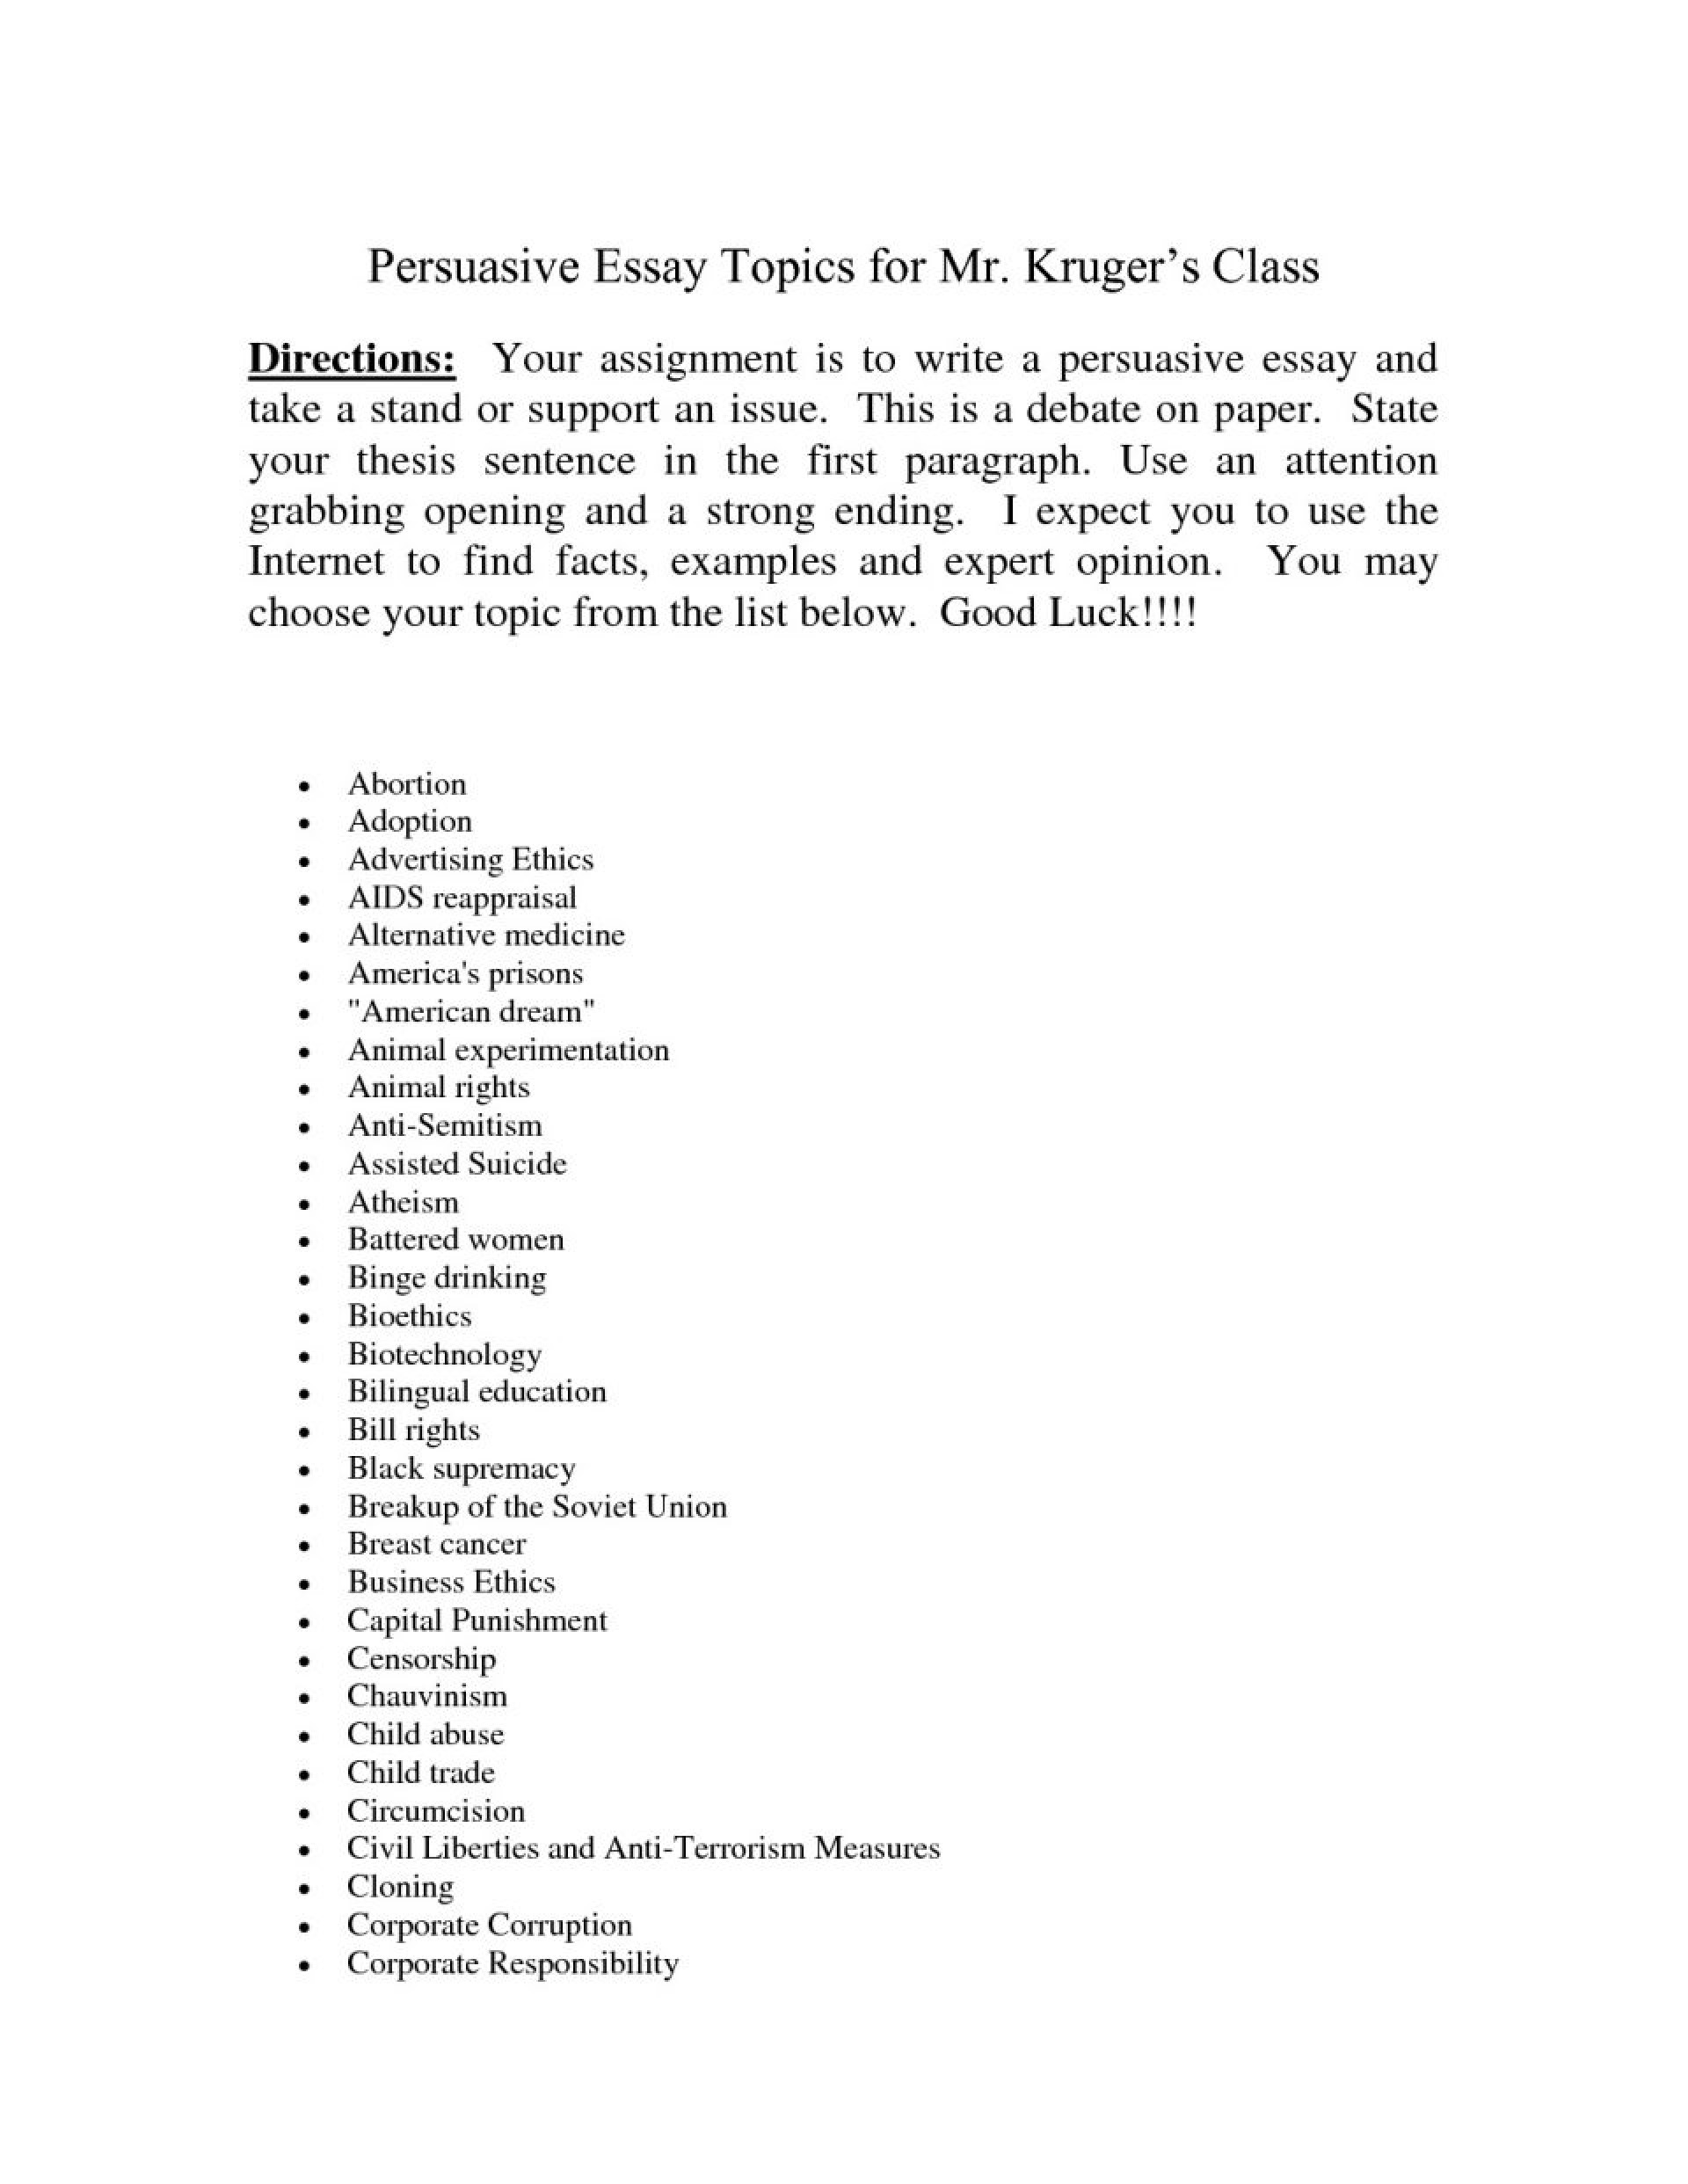 016 Topic For Essay Barca Fontanacountryinn Within Good Persuasive Narrative Topics To Write Abo Easy About Personal Descriptive Research Paper Informative Synthesis College 960x1242 Magnificent Great Papers World History Interesting Economic 1920